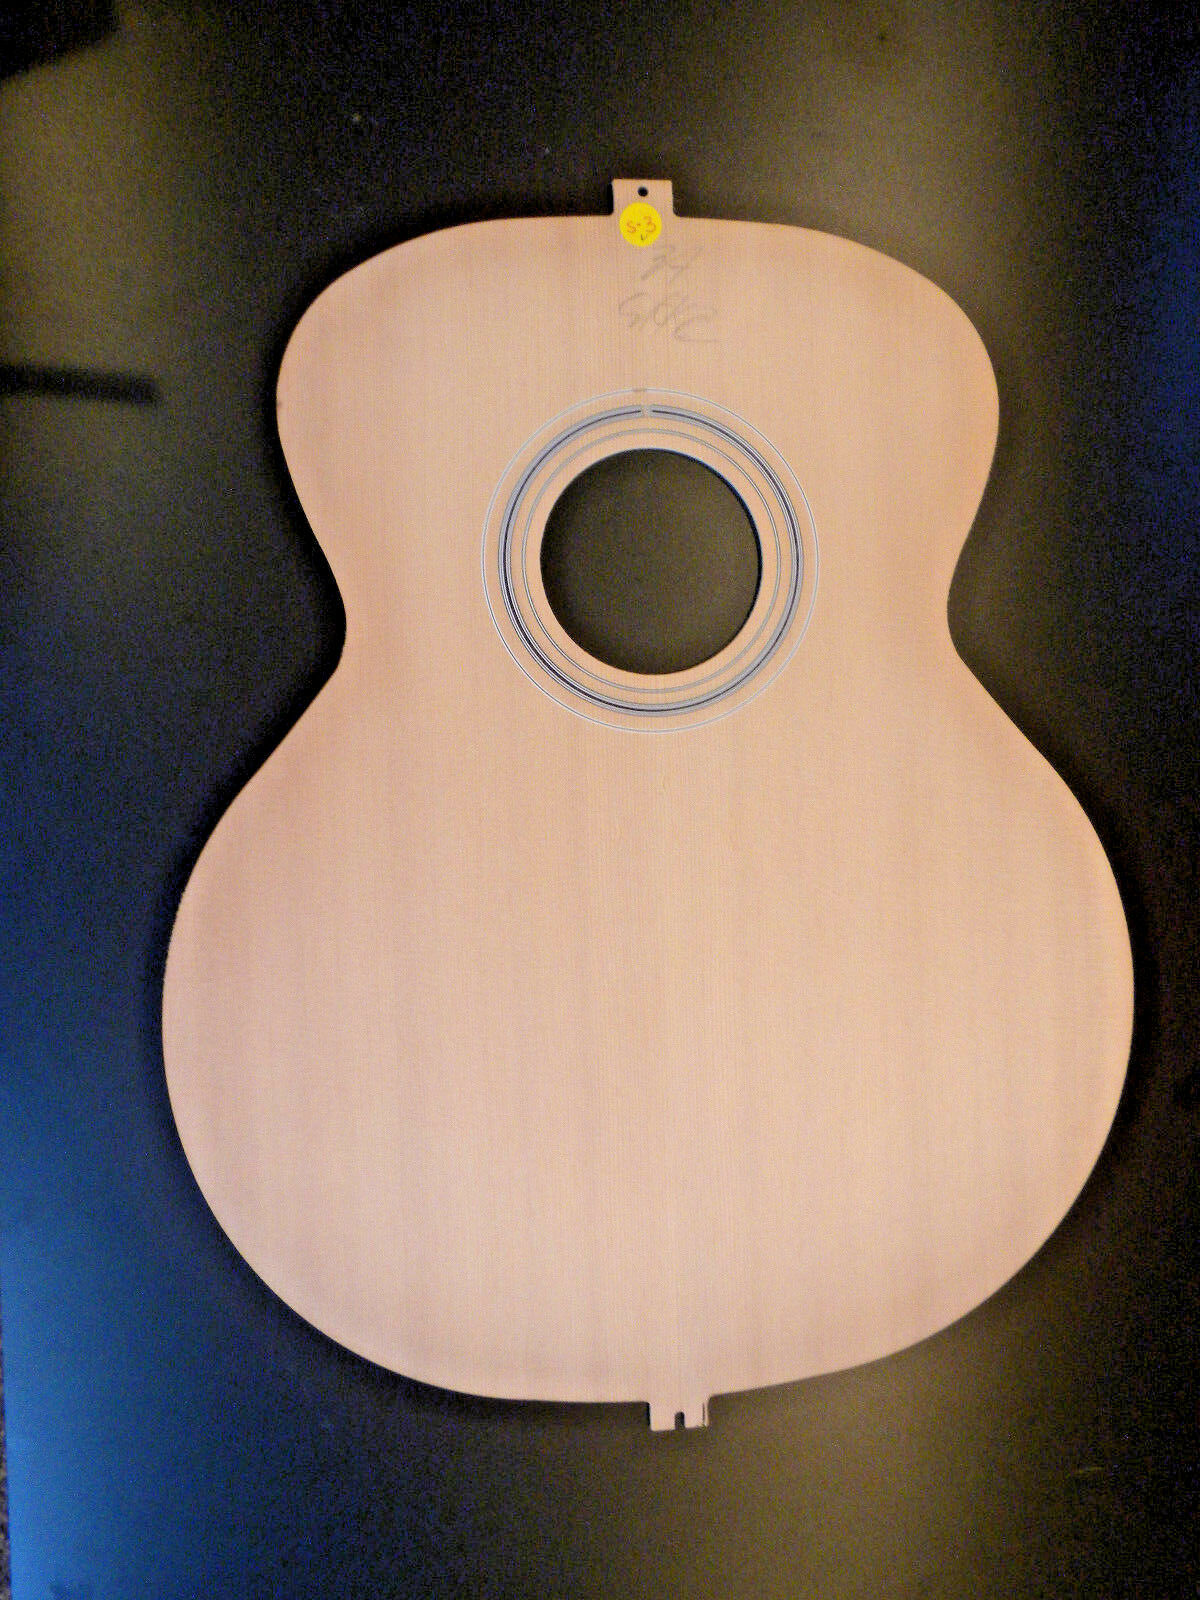 ROTUCED TACOMA GUILD Guitar Luthier Tonewood 3A SITKA JUMBO Top Rosette S-3 S-4